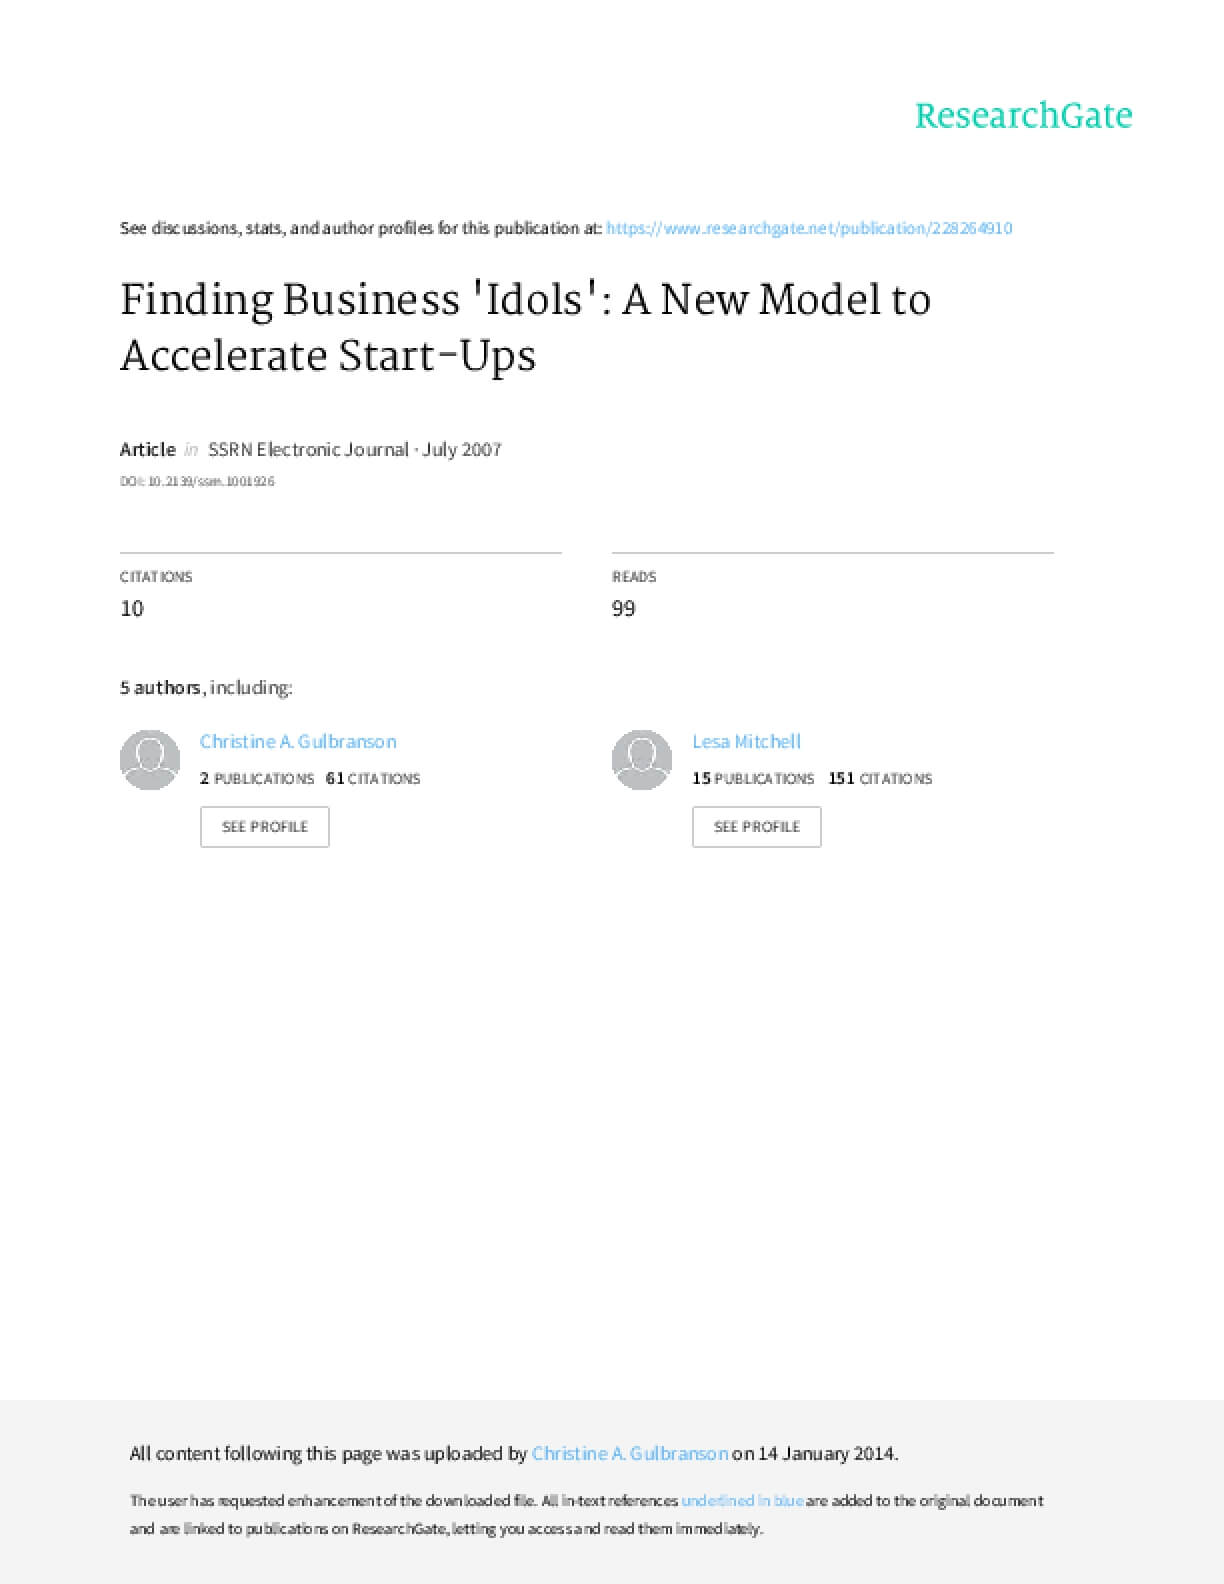 """Finding Business """"Idols"""": A New Model to Accelerate Start-Ups"""